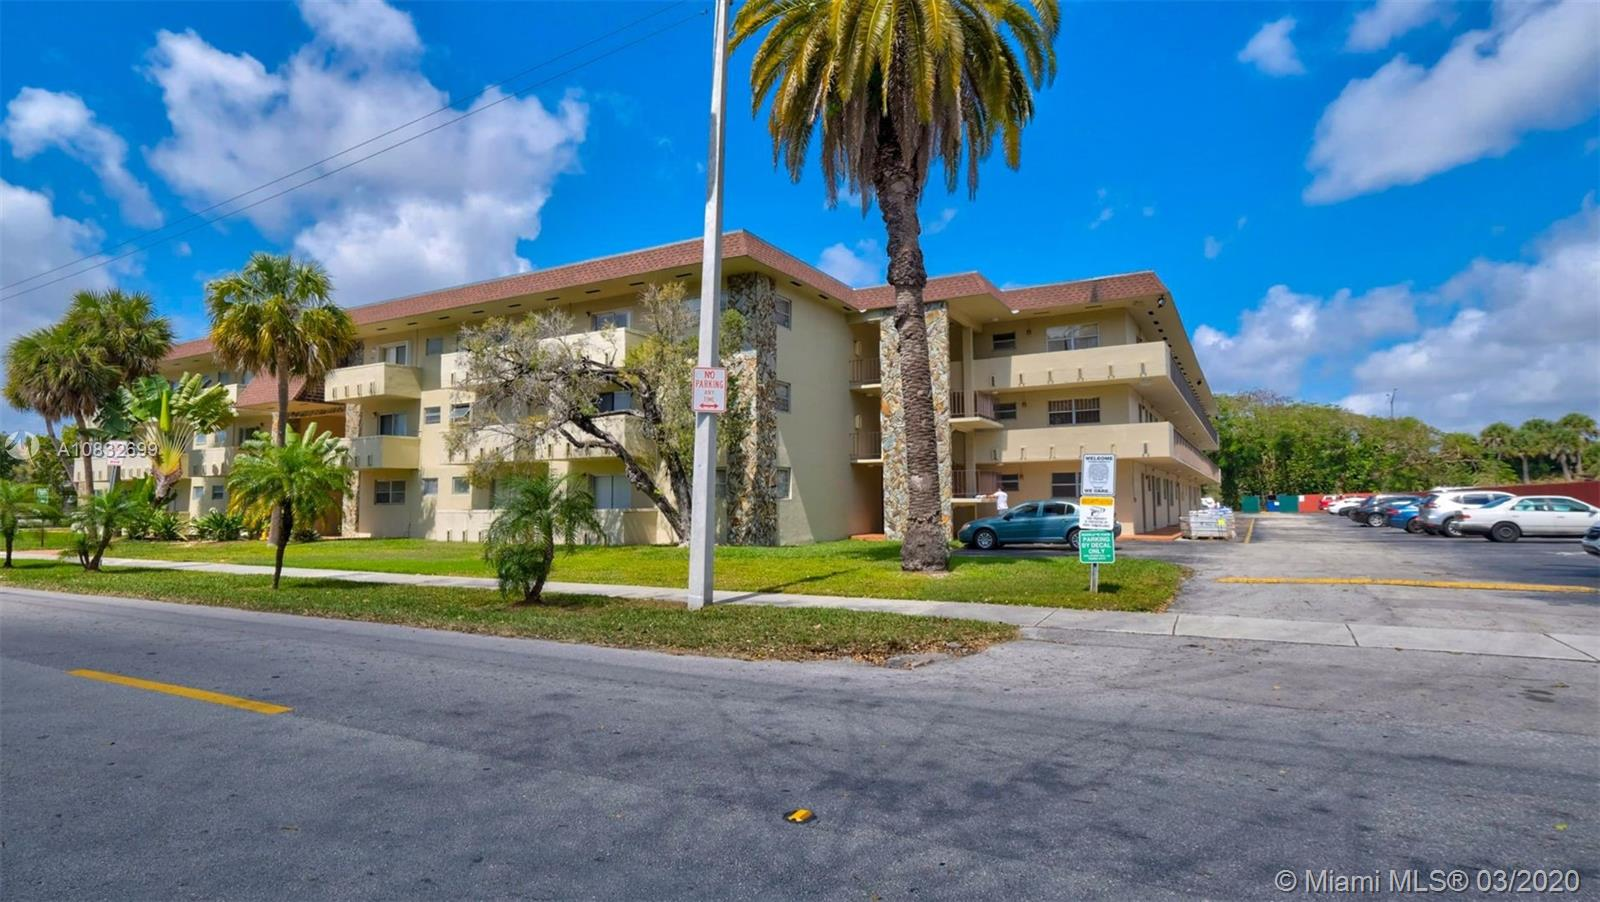 7505 SW 82nd St # 310, Miami, Florida 33143, 1 Bedroom Bedrooms, ,1 BathroomBathrooms,Residential,For Sale,7505 SW 82nd St # 310,A10832699